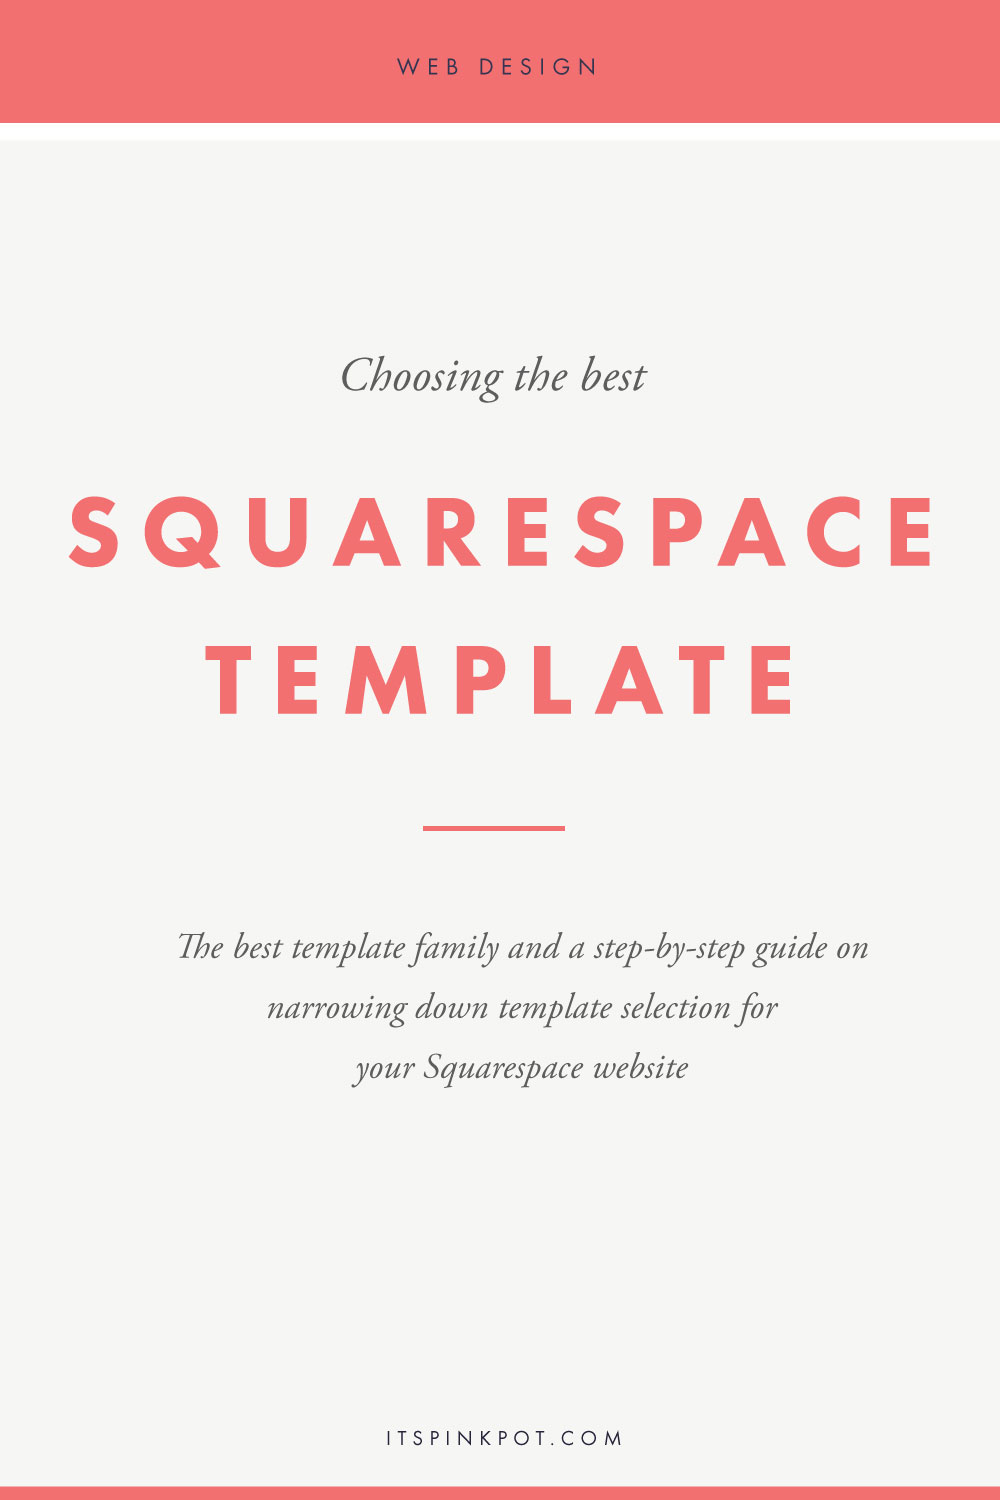 As soon as you sign up for Squarespace, the first decision you gotta make is 'Which template should you use for your website'? One look at the template page on Squrespace and you 'll want to go hide. It has over 24 template families (a lot more templates in each family!) with new ones being added to the collection. So how do you choose which one's best for you? Here's the best Squarespace template family and a guide on how to narrow down on the template selection for your website >>